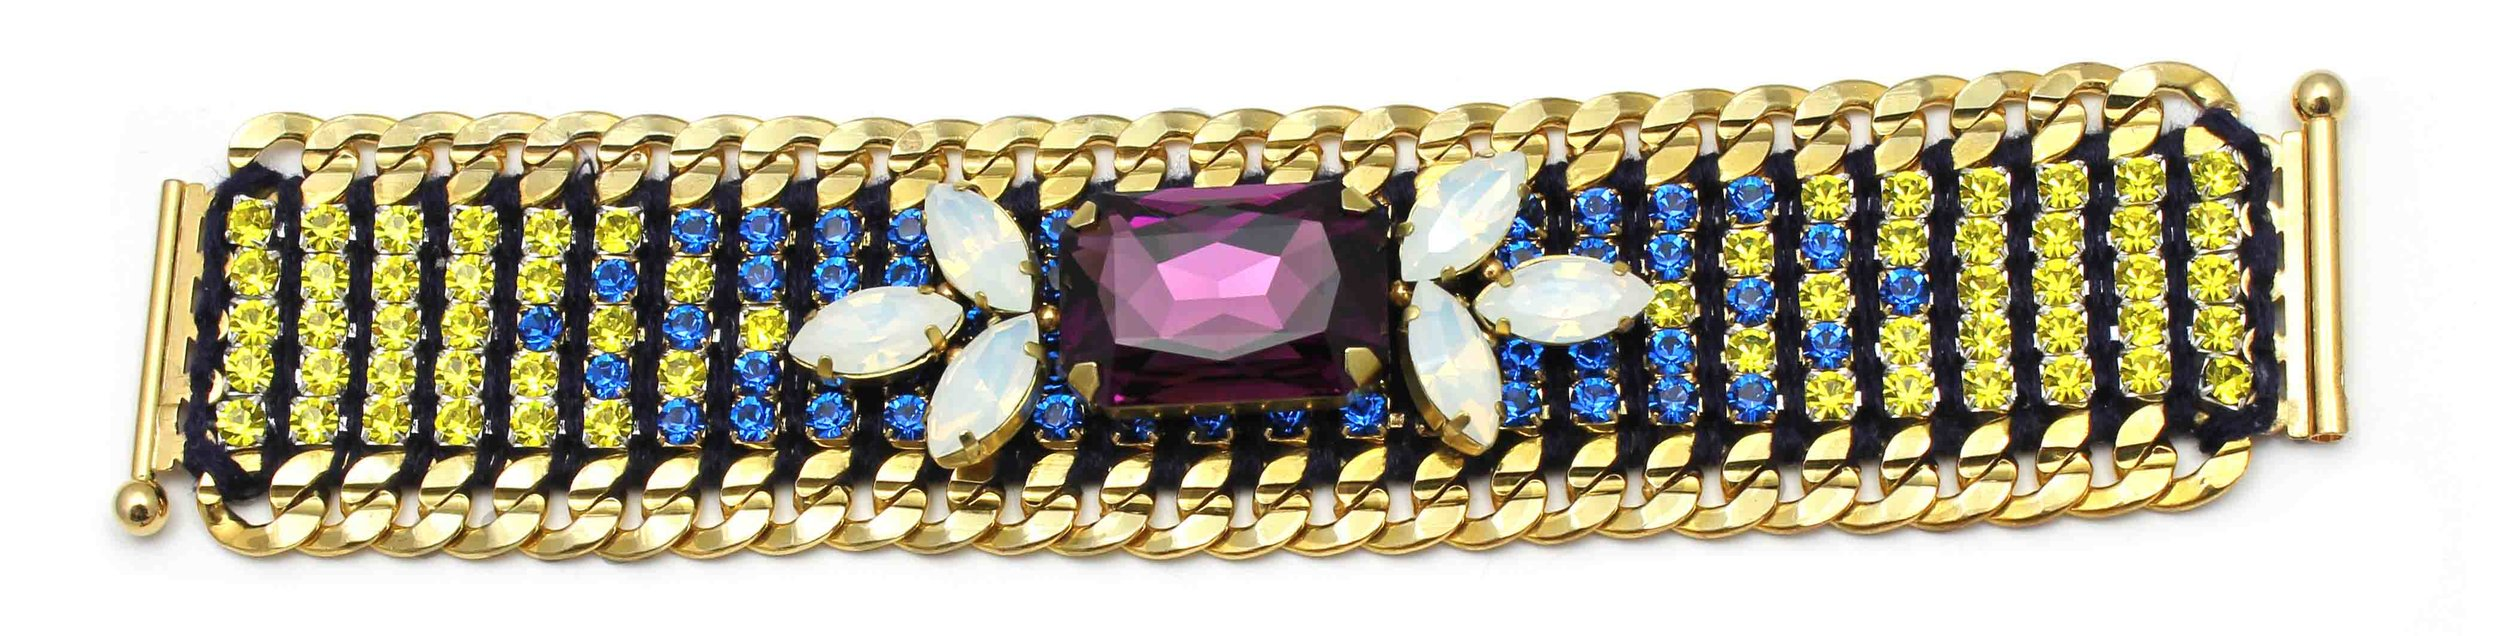 146BY Tropicana Bright 2-Tone Crystal Bracelet - BlueYellow.jpg